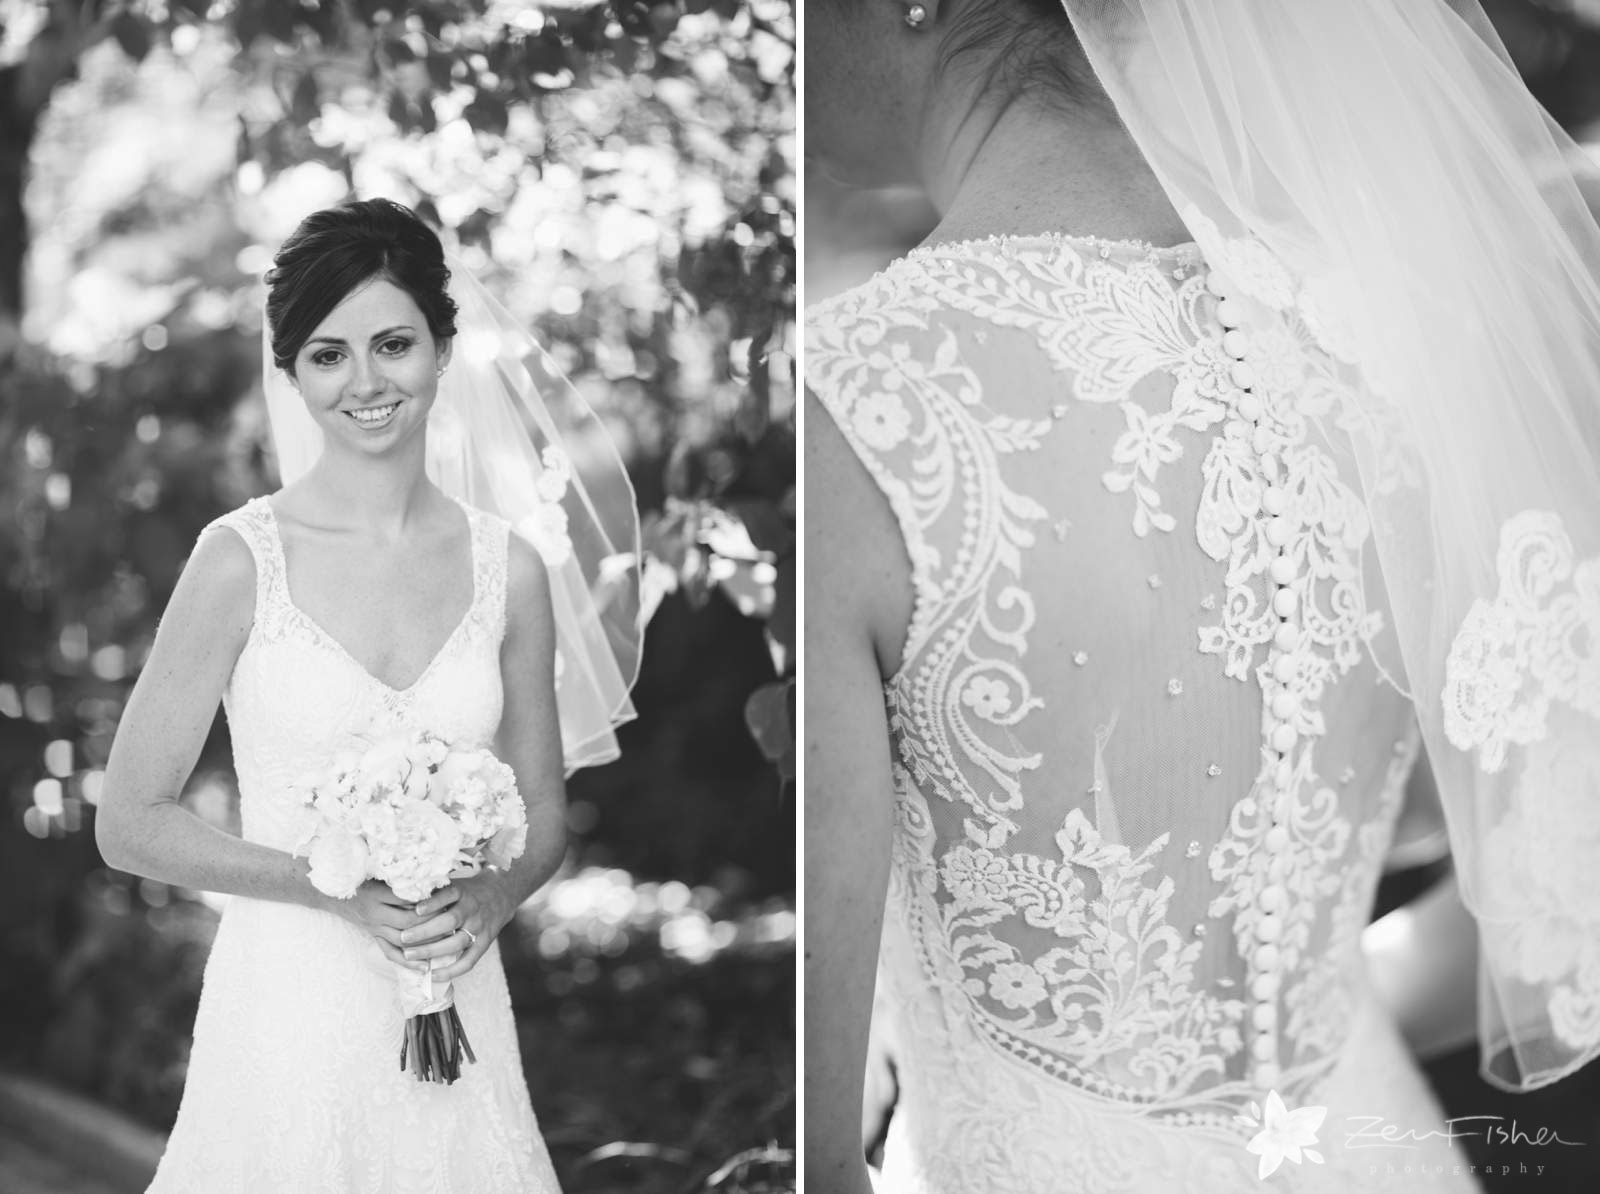 Black and white portrait of bride, detail of the back of bride's dress, white lace wedding dress.